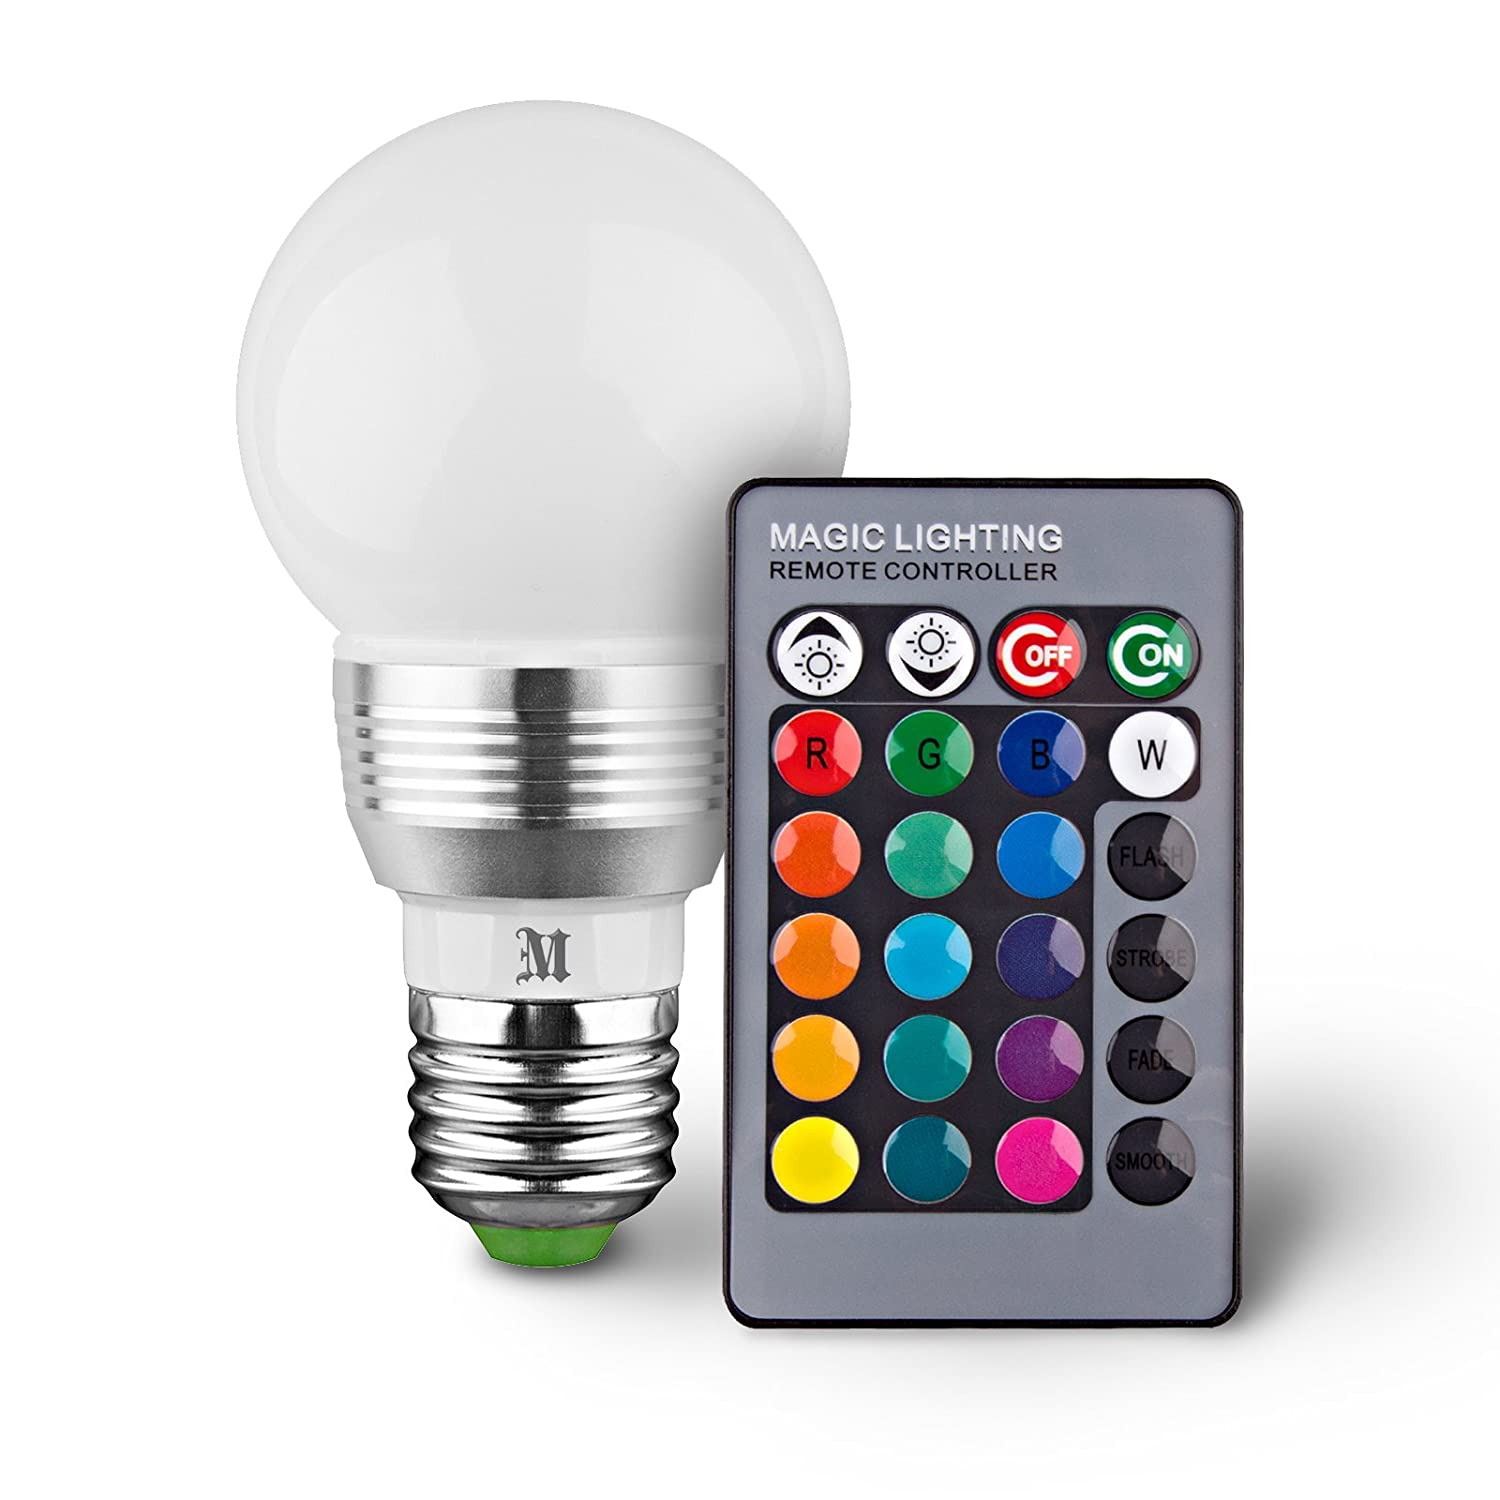 Kobra retro led color changing light bulb with remote control 16 kobra retro led color changing light bulb with remote control 16 different color choices smooth flash or strobe mode premium quality energy saving arubaitofo Choice Image